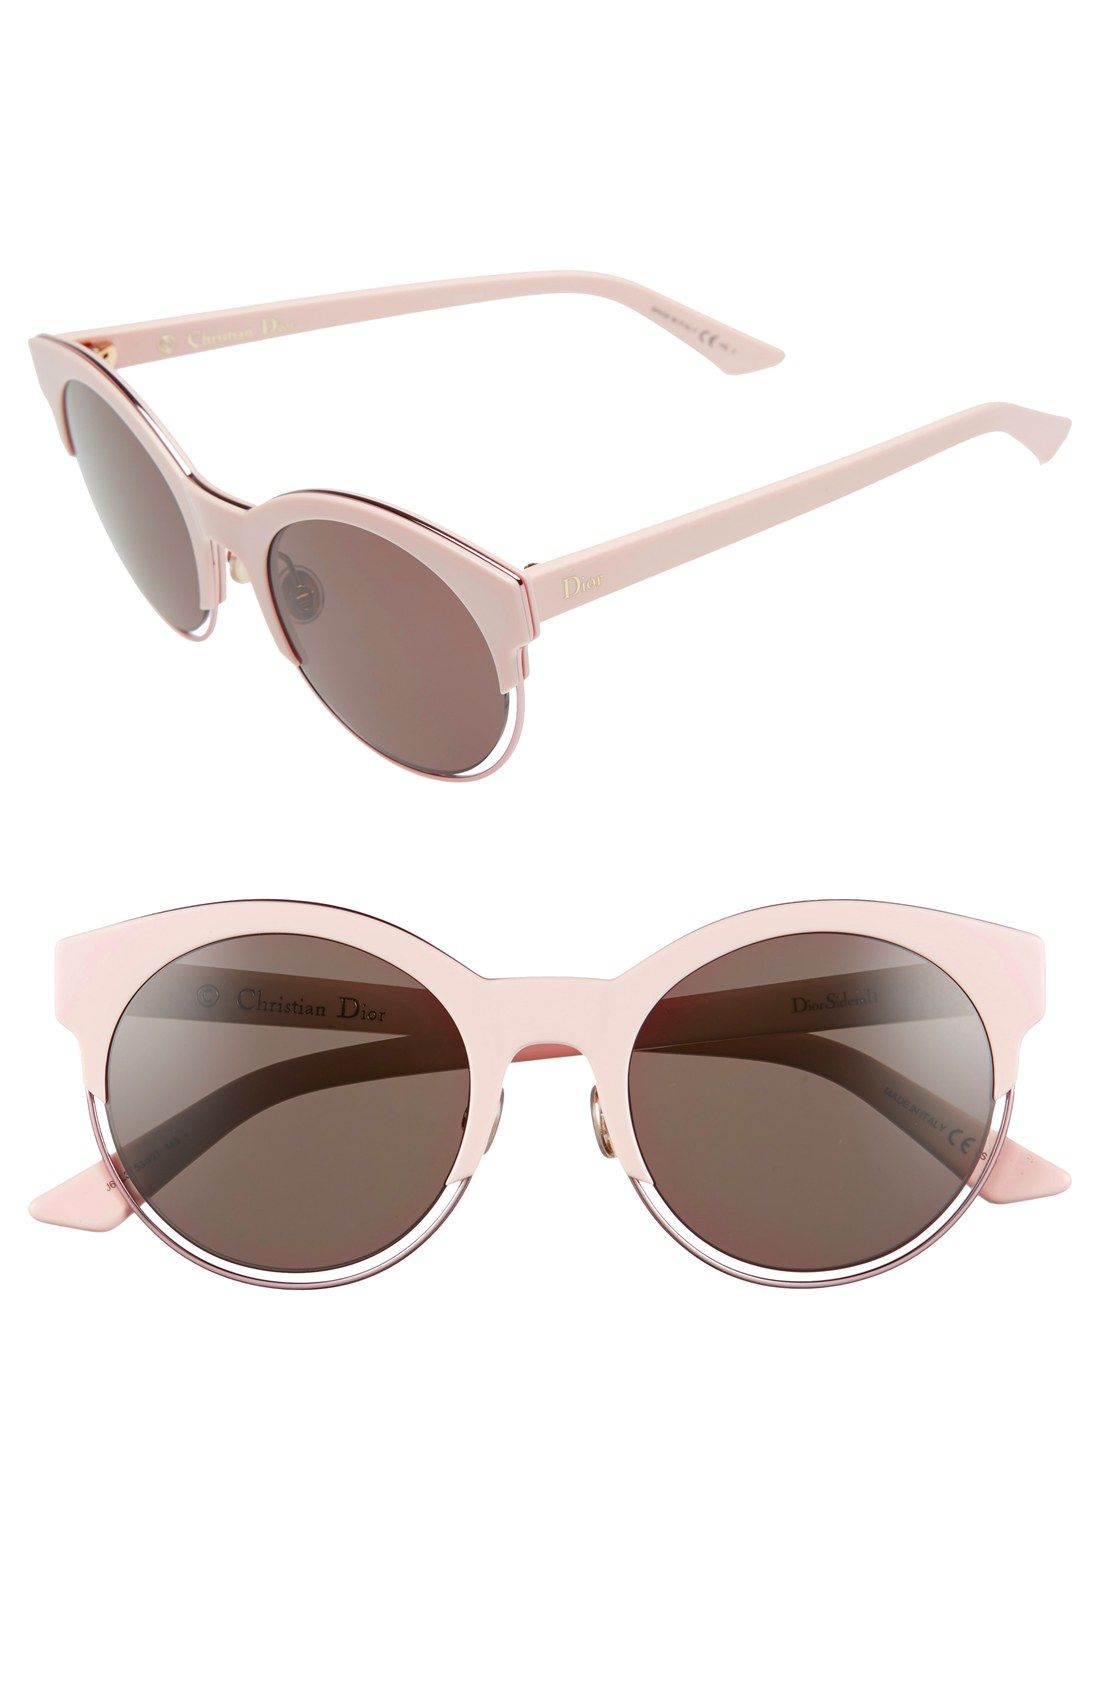 c2f810f1771 Dior  Sideral 1  53mm Sunglasses